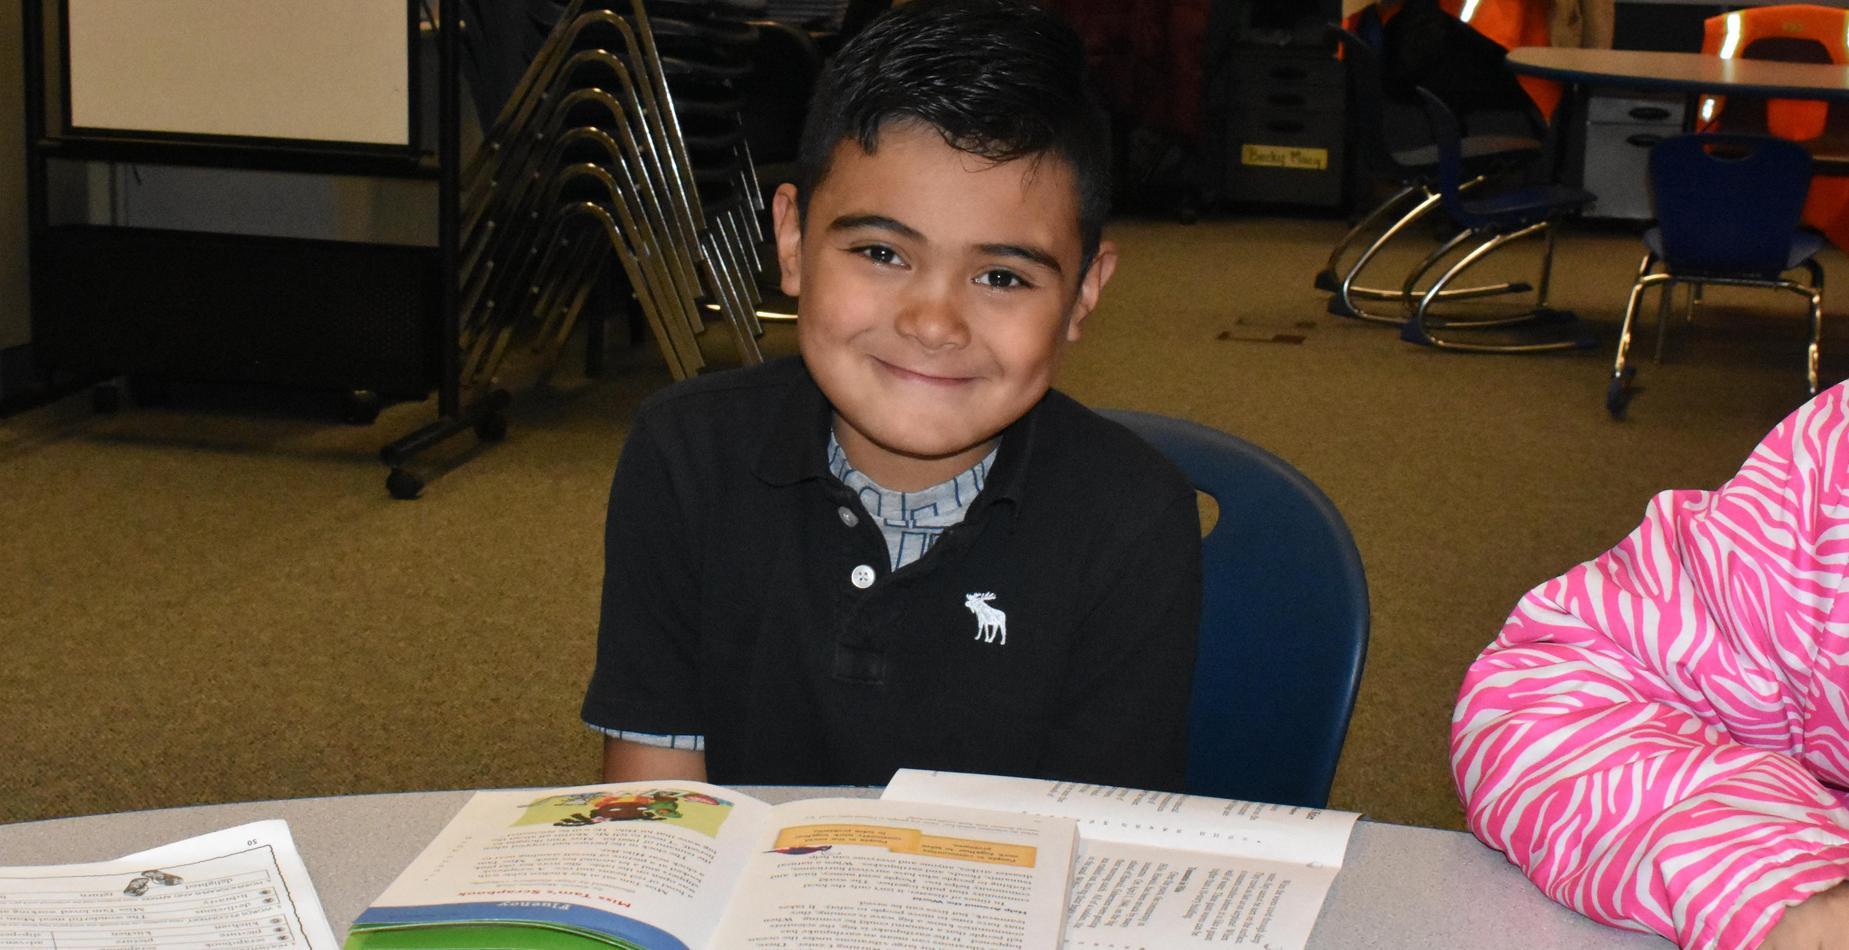 A boy getting ready to read during reading group.